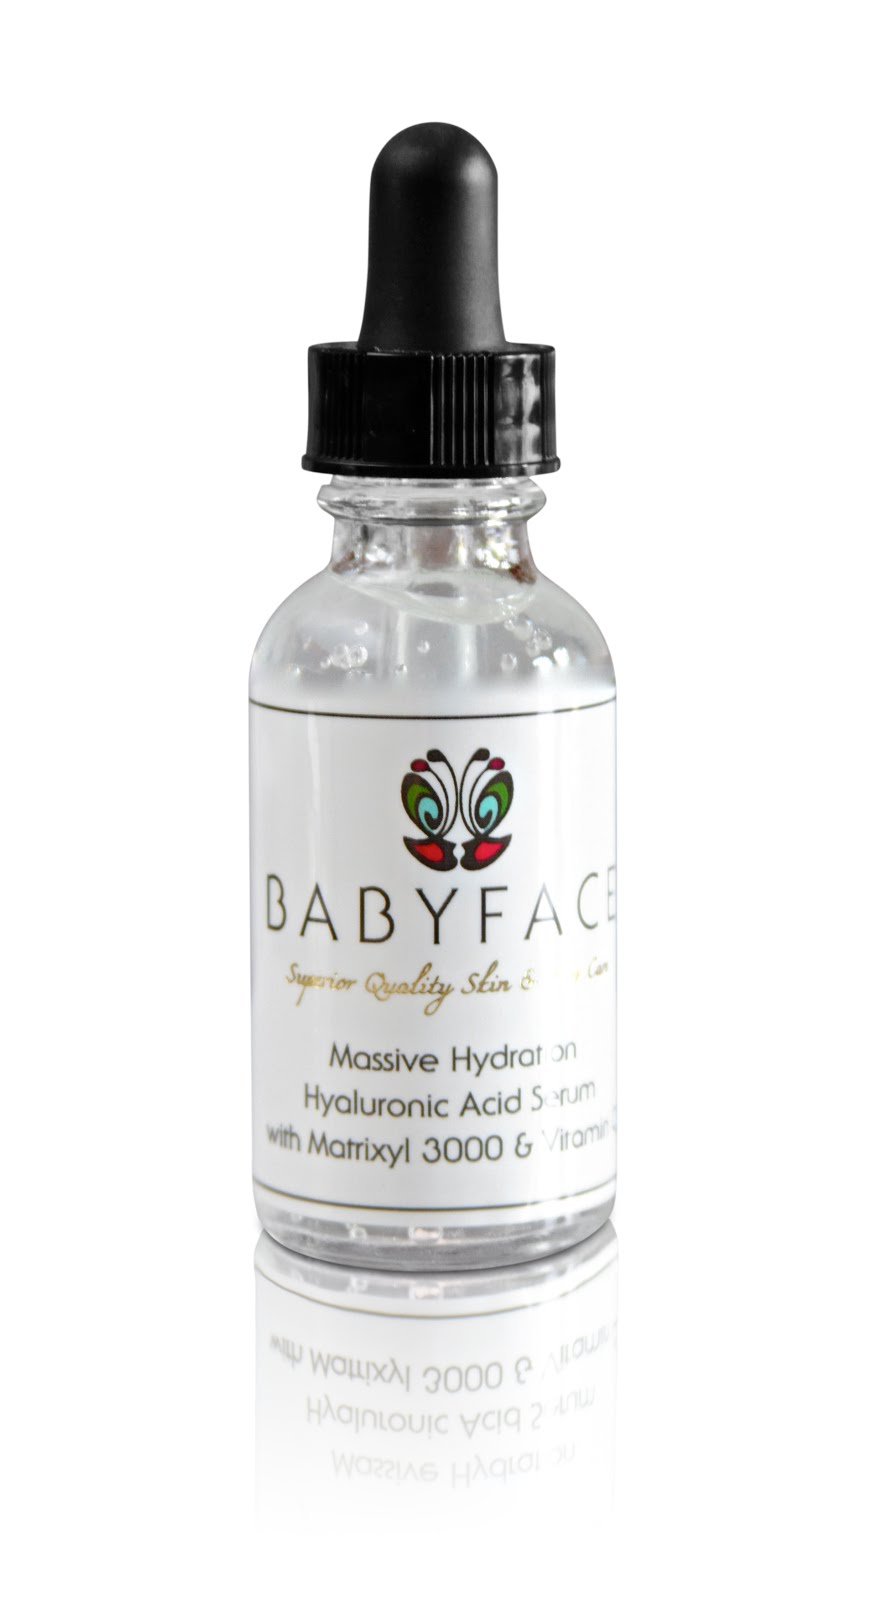 Babyface Massive Hydration, Original Formula Hyaluronic Acid Serum